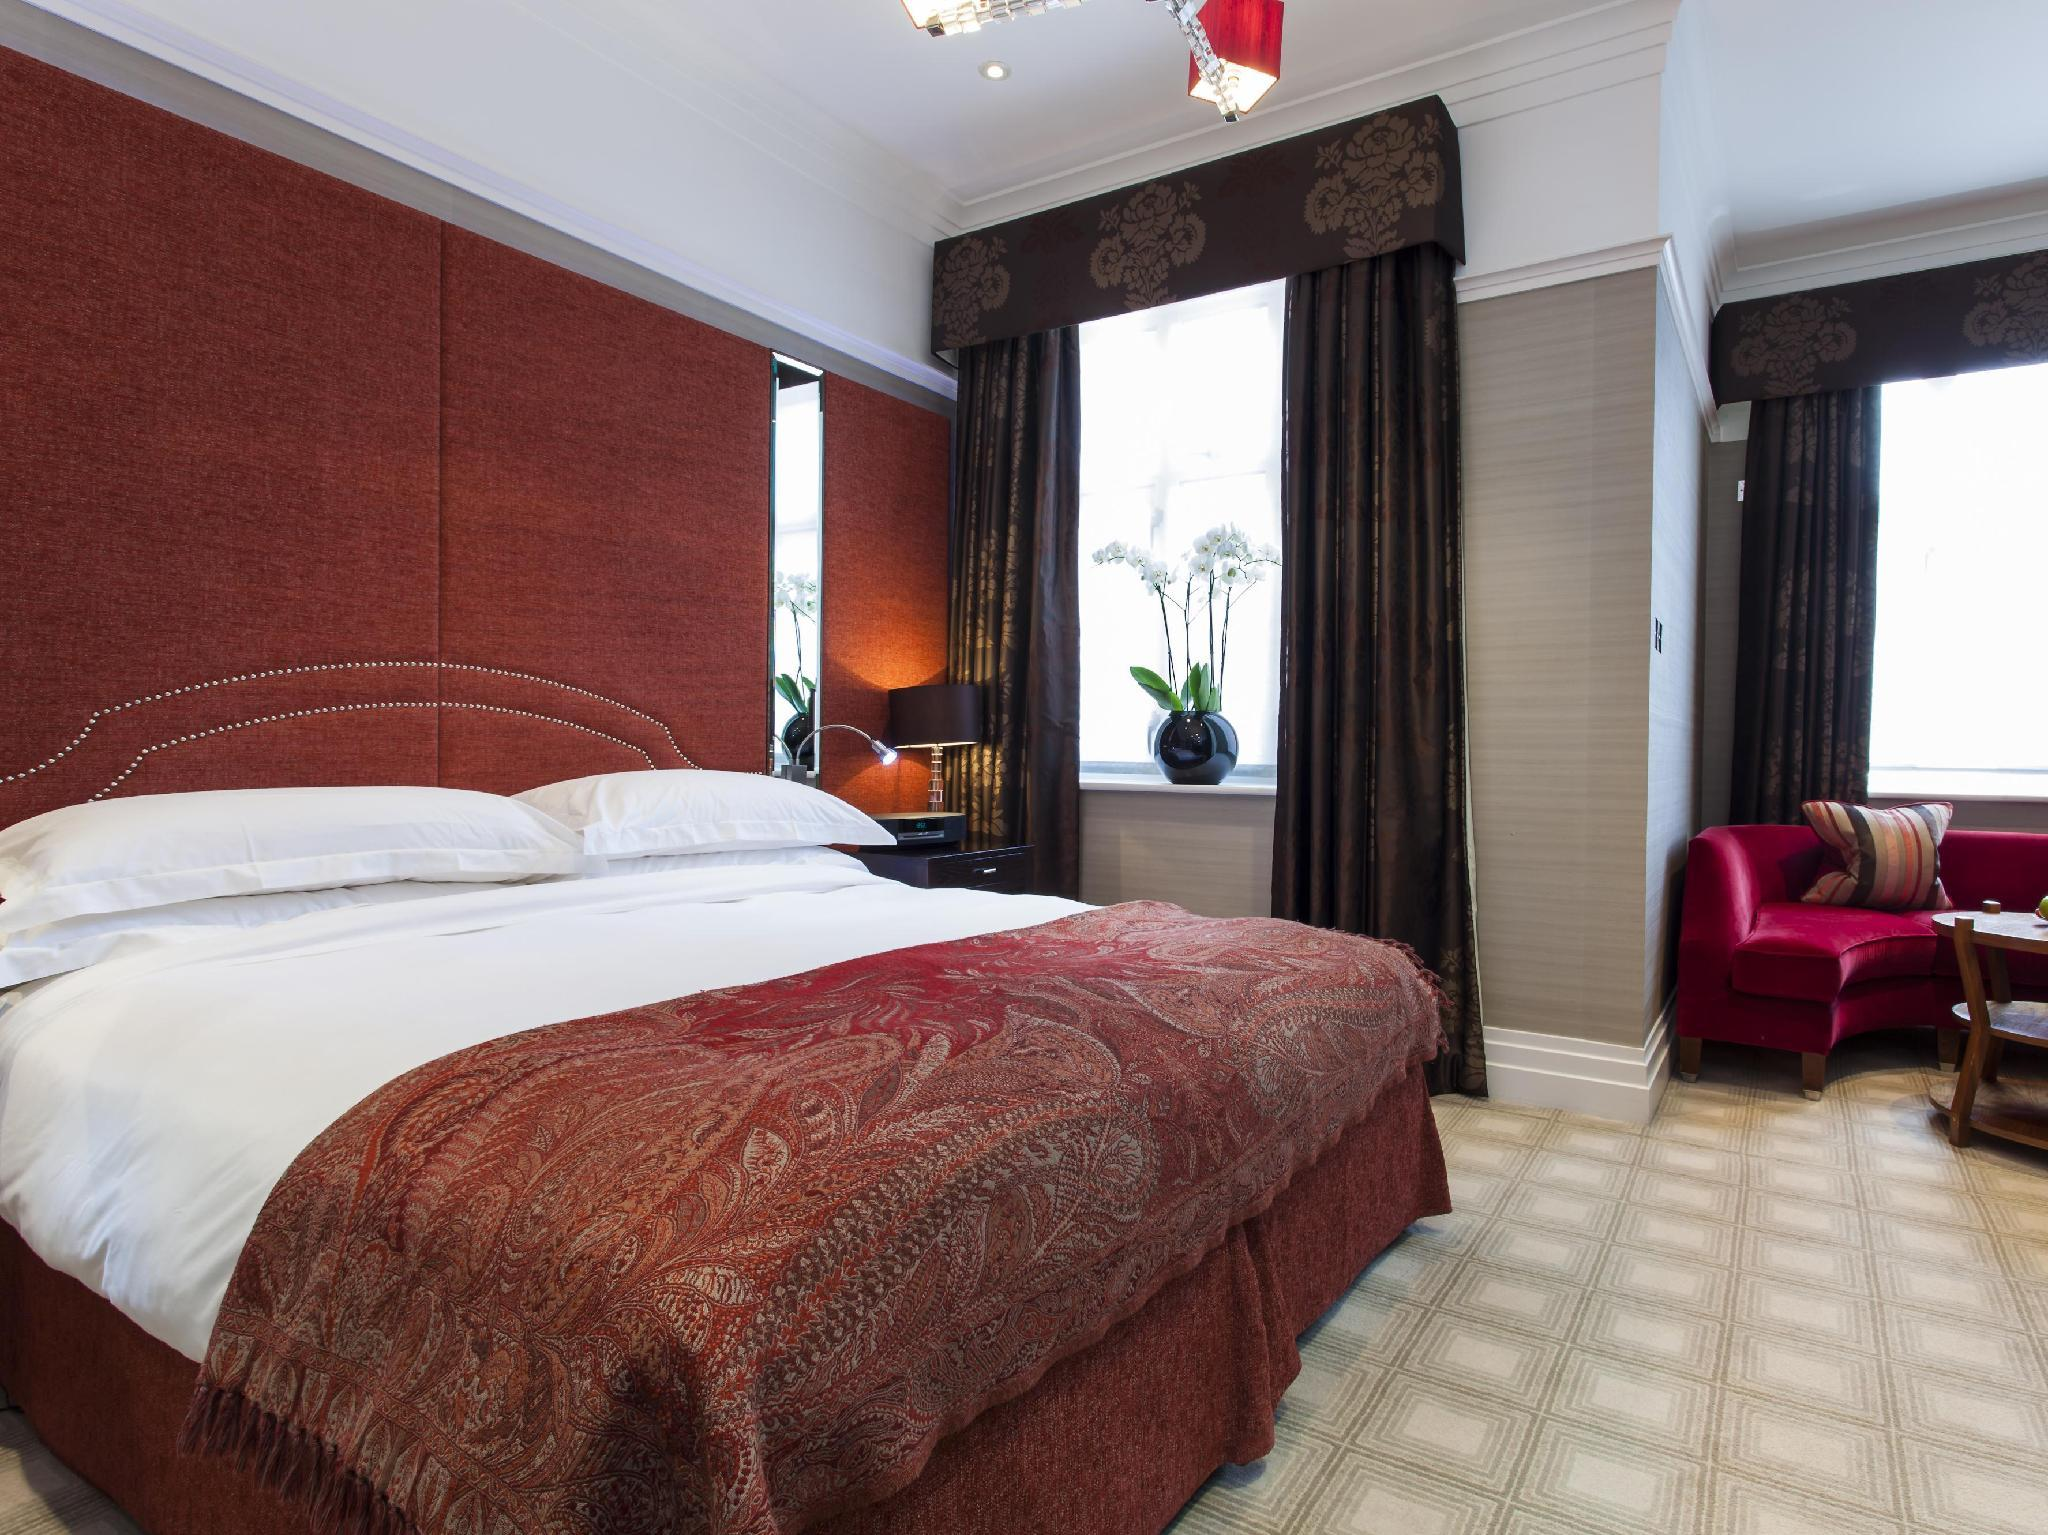 Best Price On The Levin Hotel Knightsbridge In London Reviews  # Meuble Tv Fado